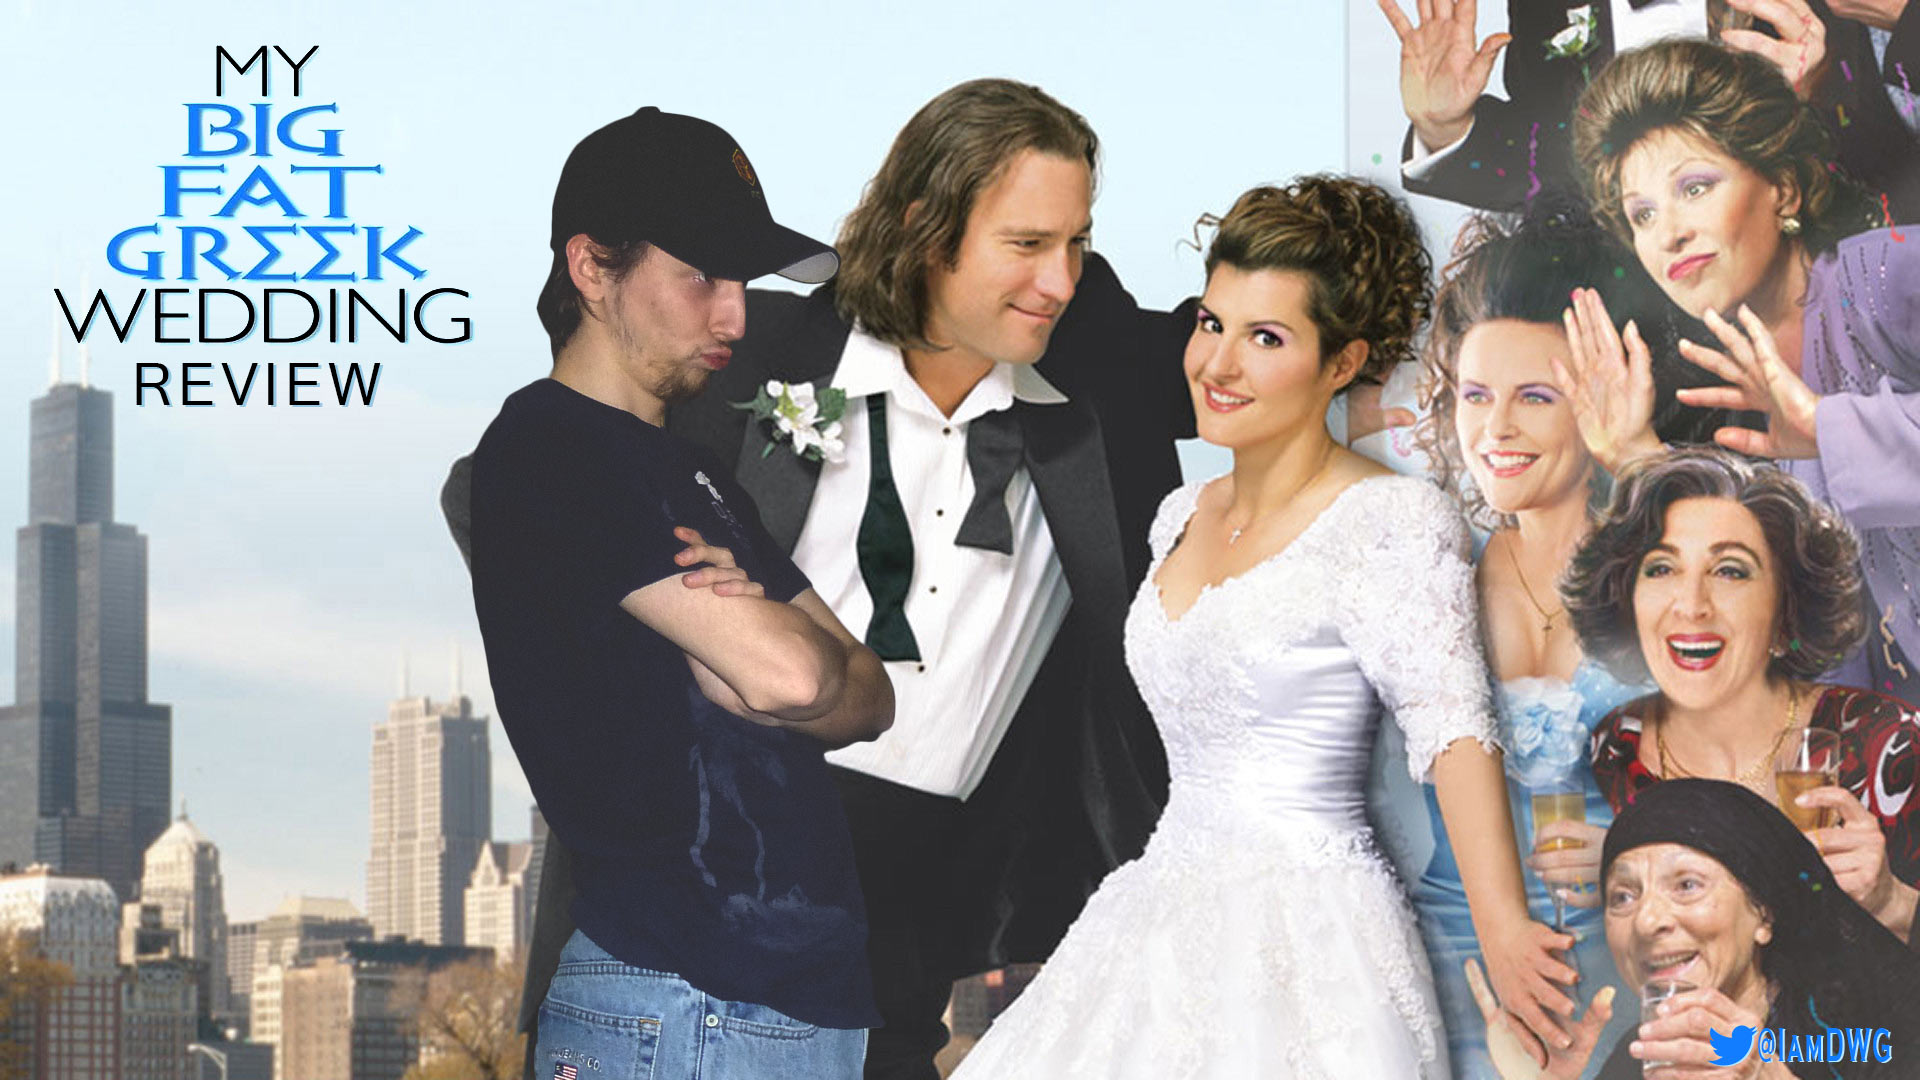 My Big Fat Greek Wedding Movie Review.